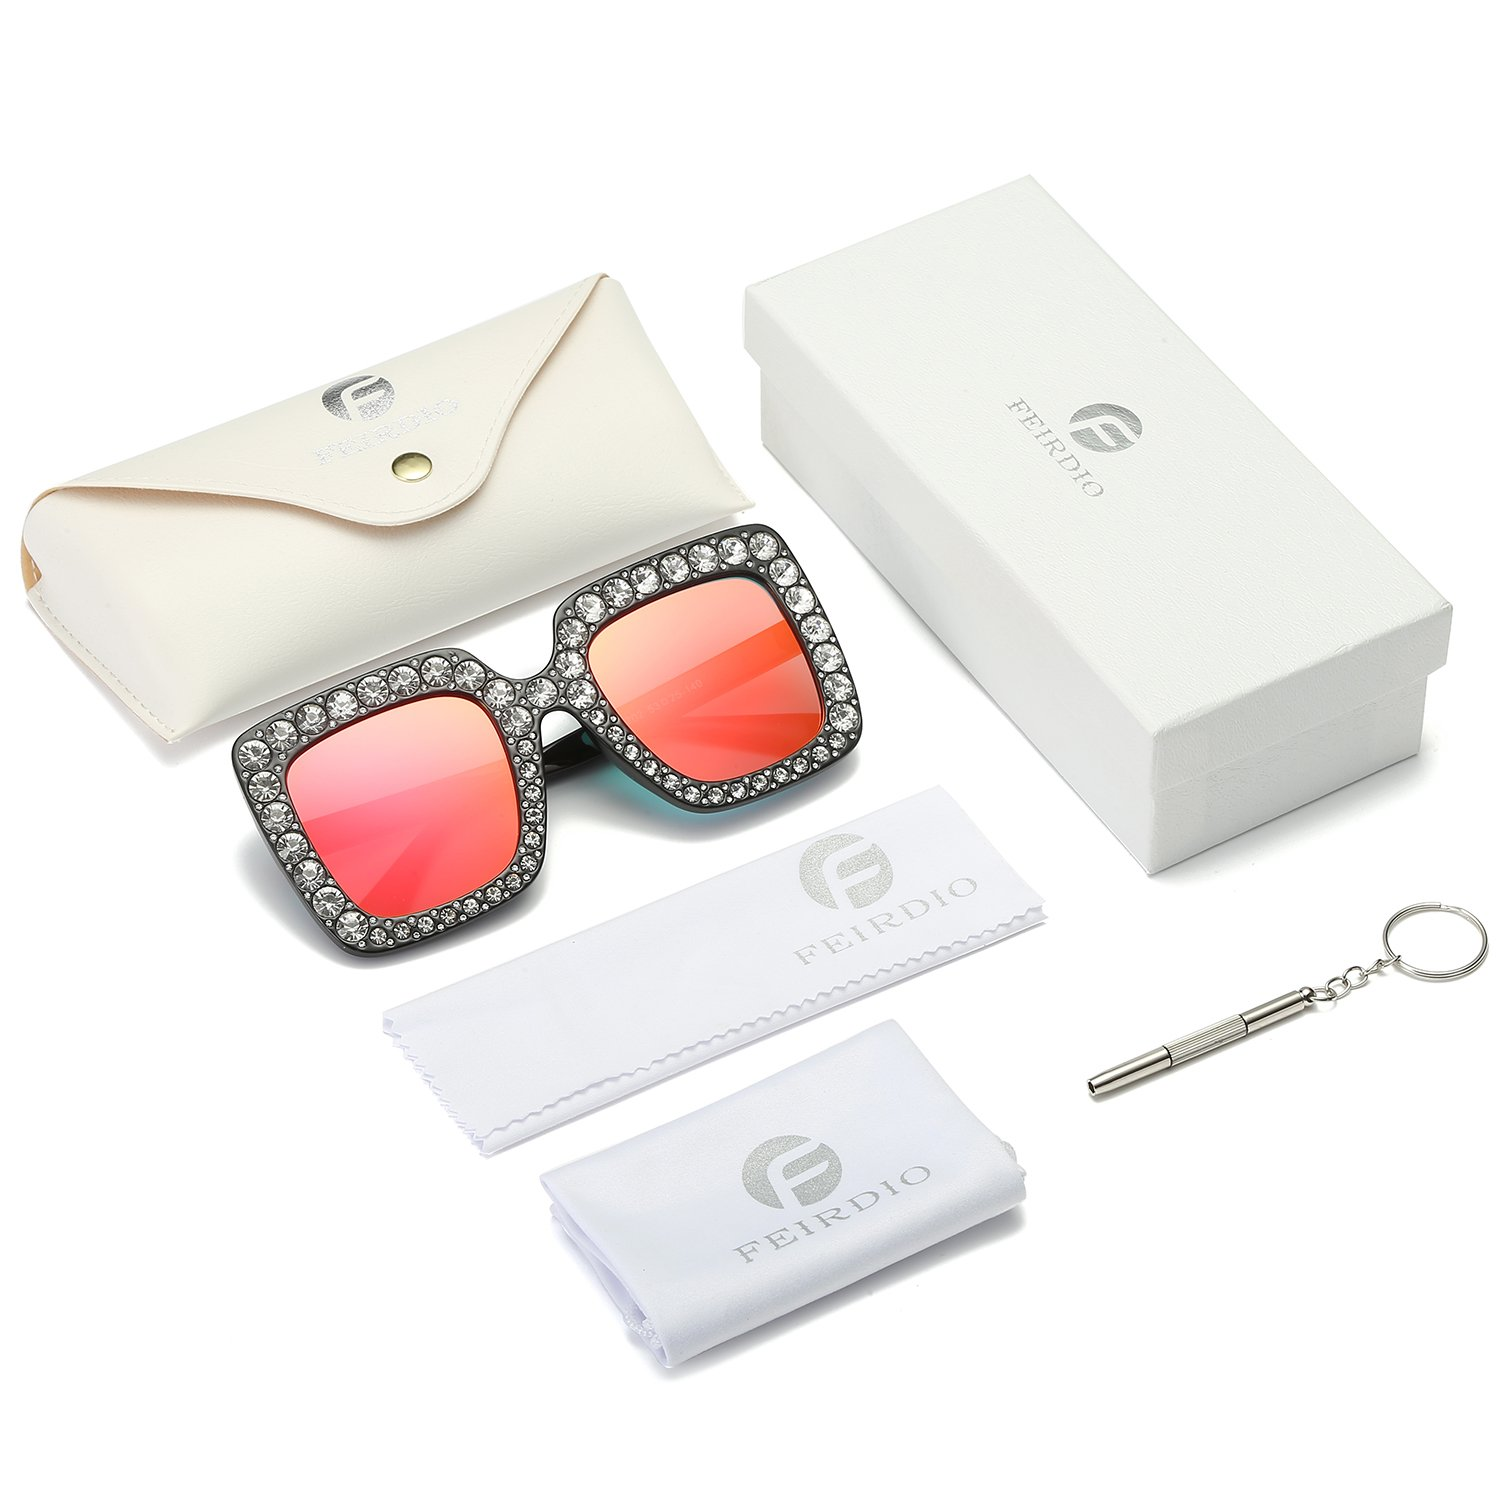 e823071a06 Oversized Crystal Sunglasses for Women- Feirdio Mirrored Square Sunglasses  women sunglasses 2264 (Red gradient